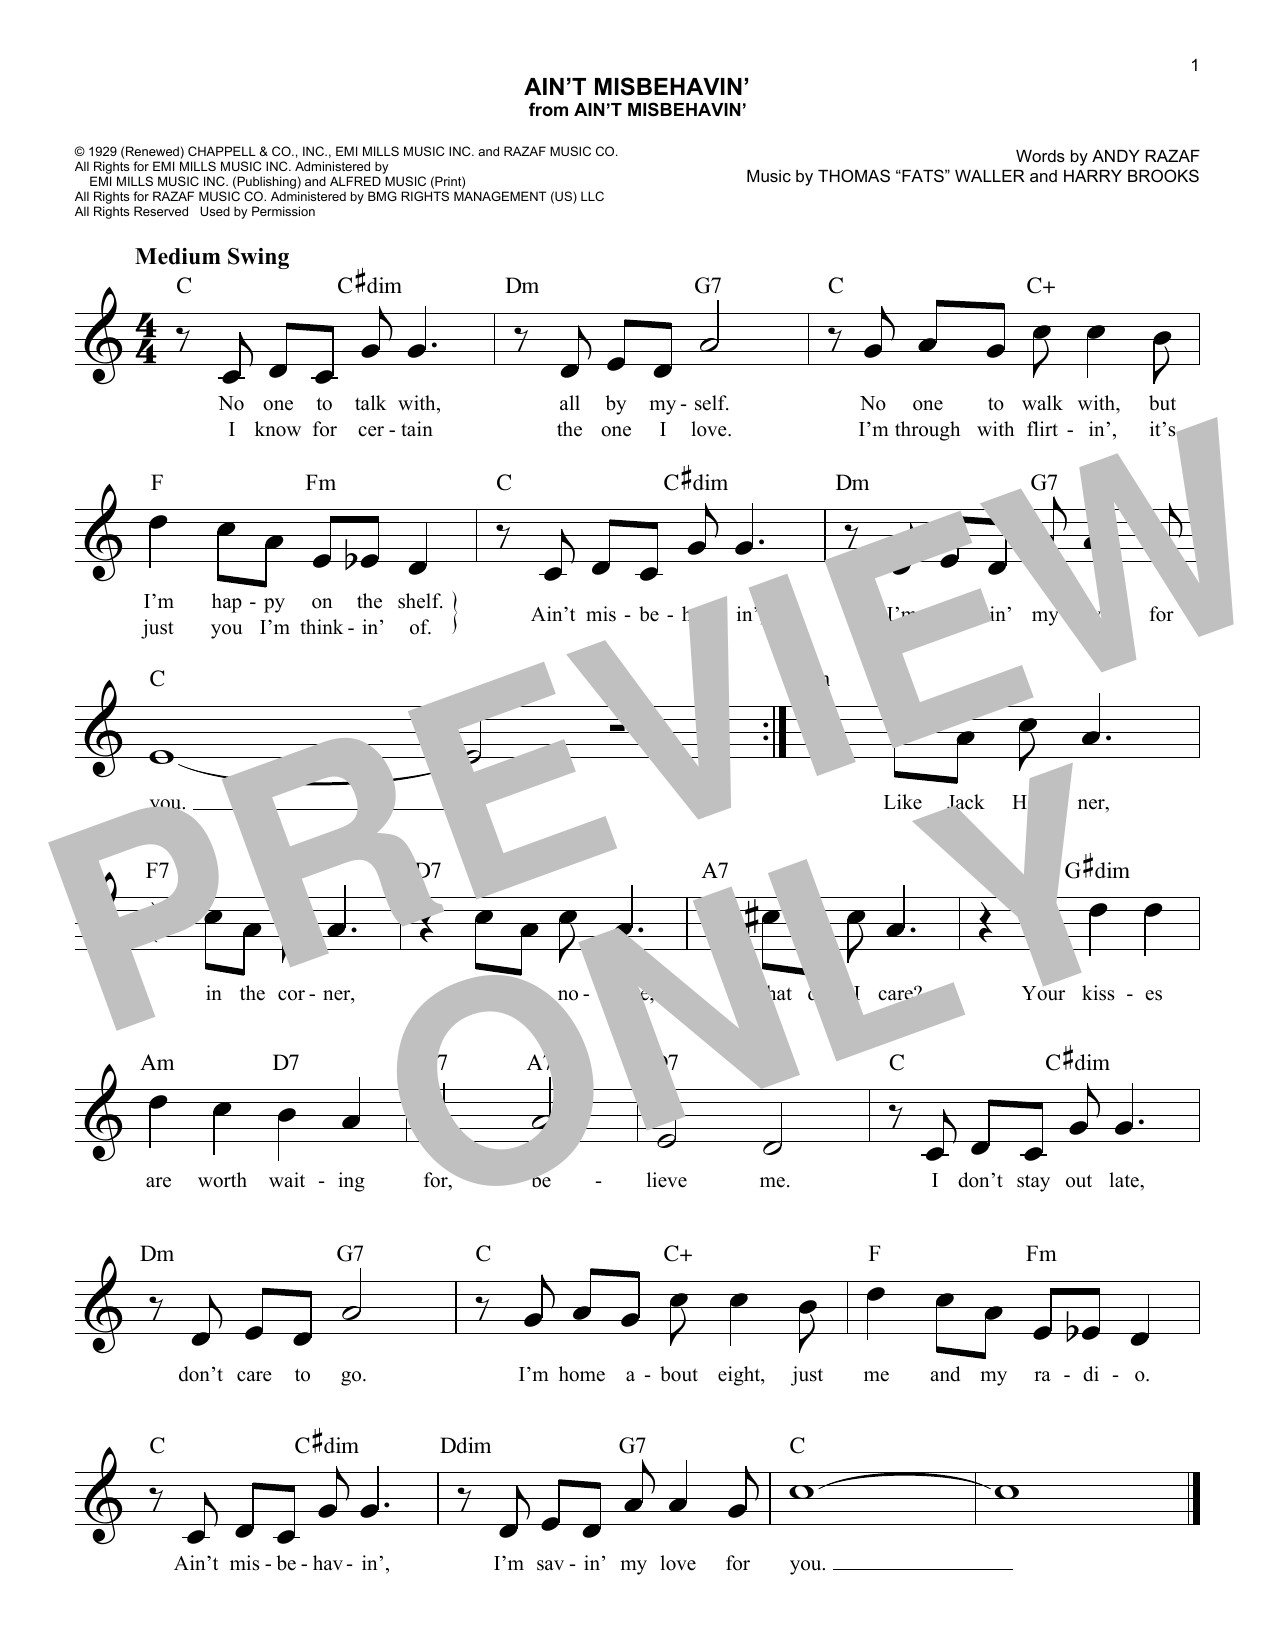 Ain't Misbehavin' Sheet Music